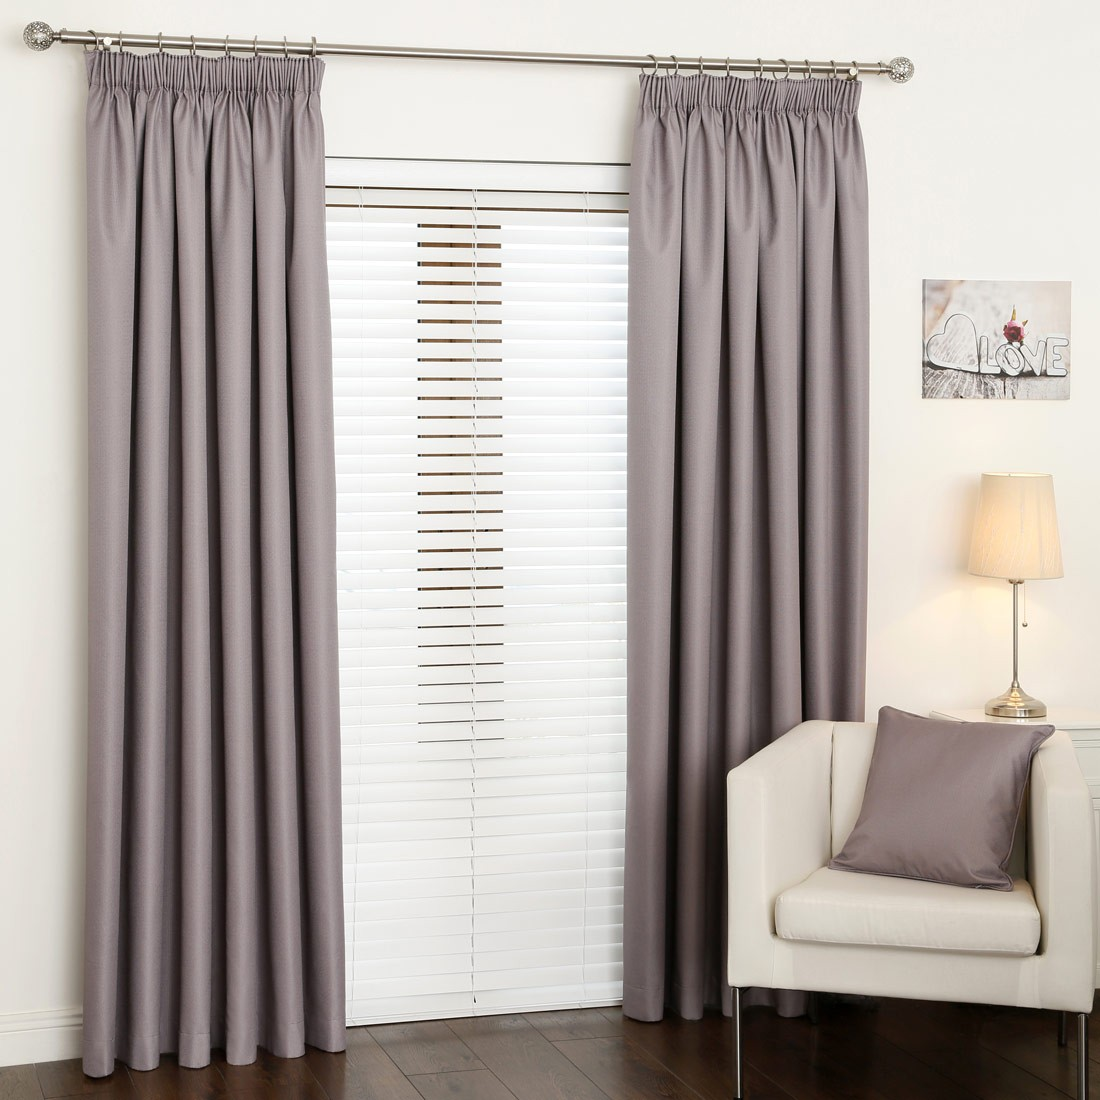 Cheap Blackout Curtains | Cheap Window Treatments | Blackout Curtains for Sale